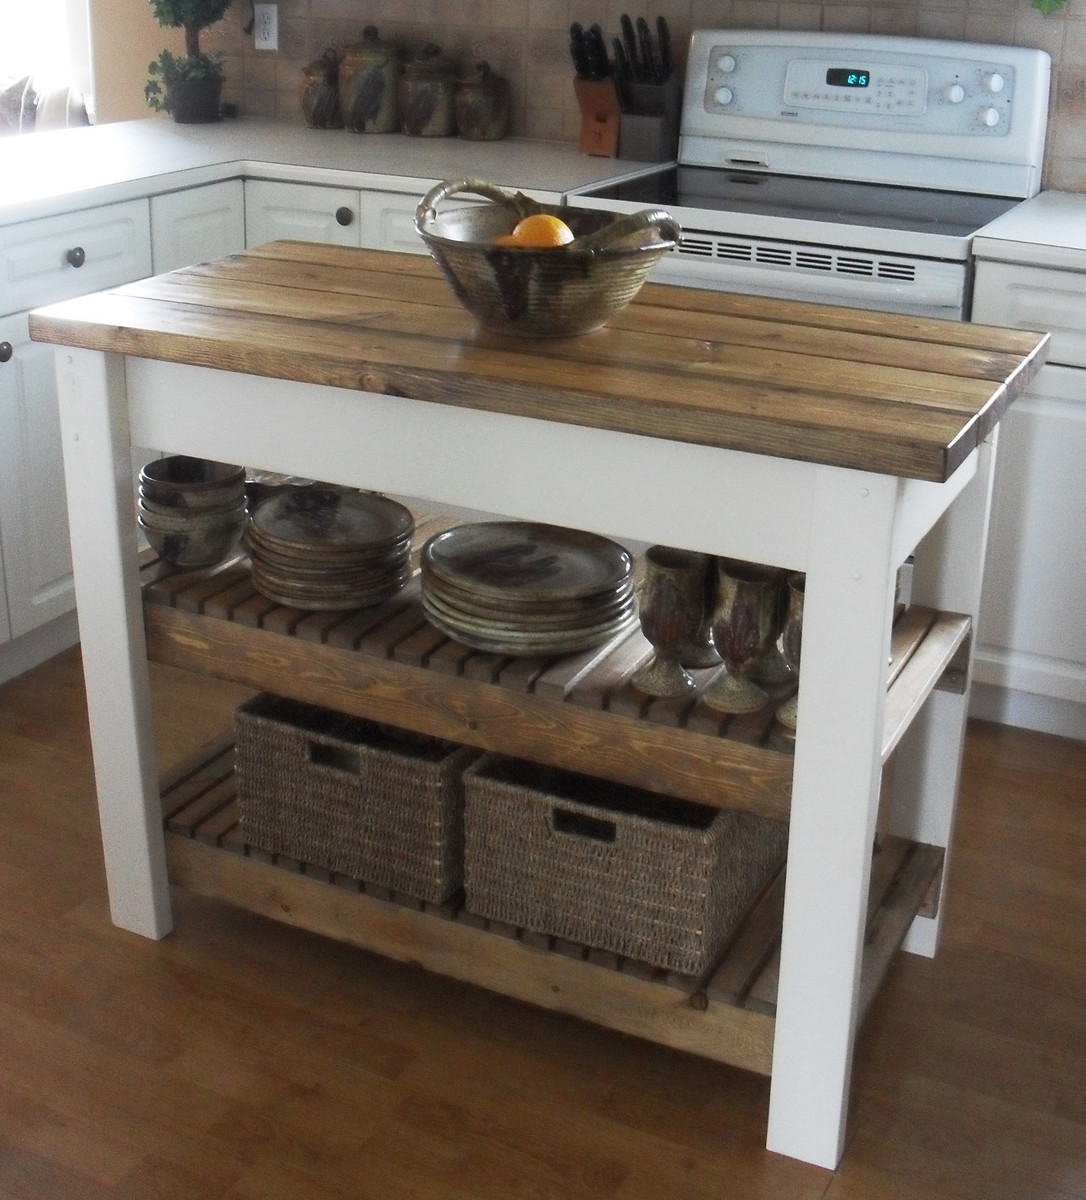 Best ideas about DIY Kitchen Island Plans . Save or Pin Ana White Now.